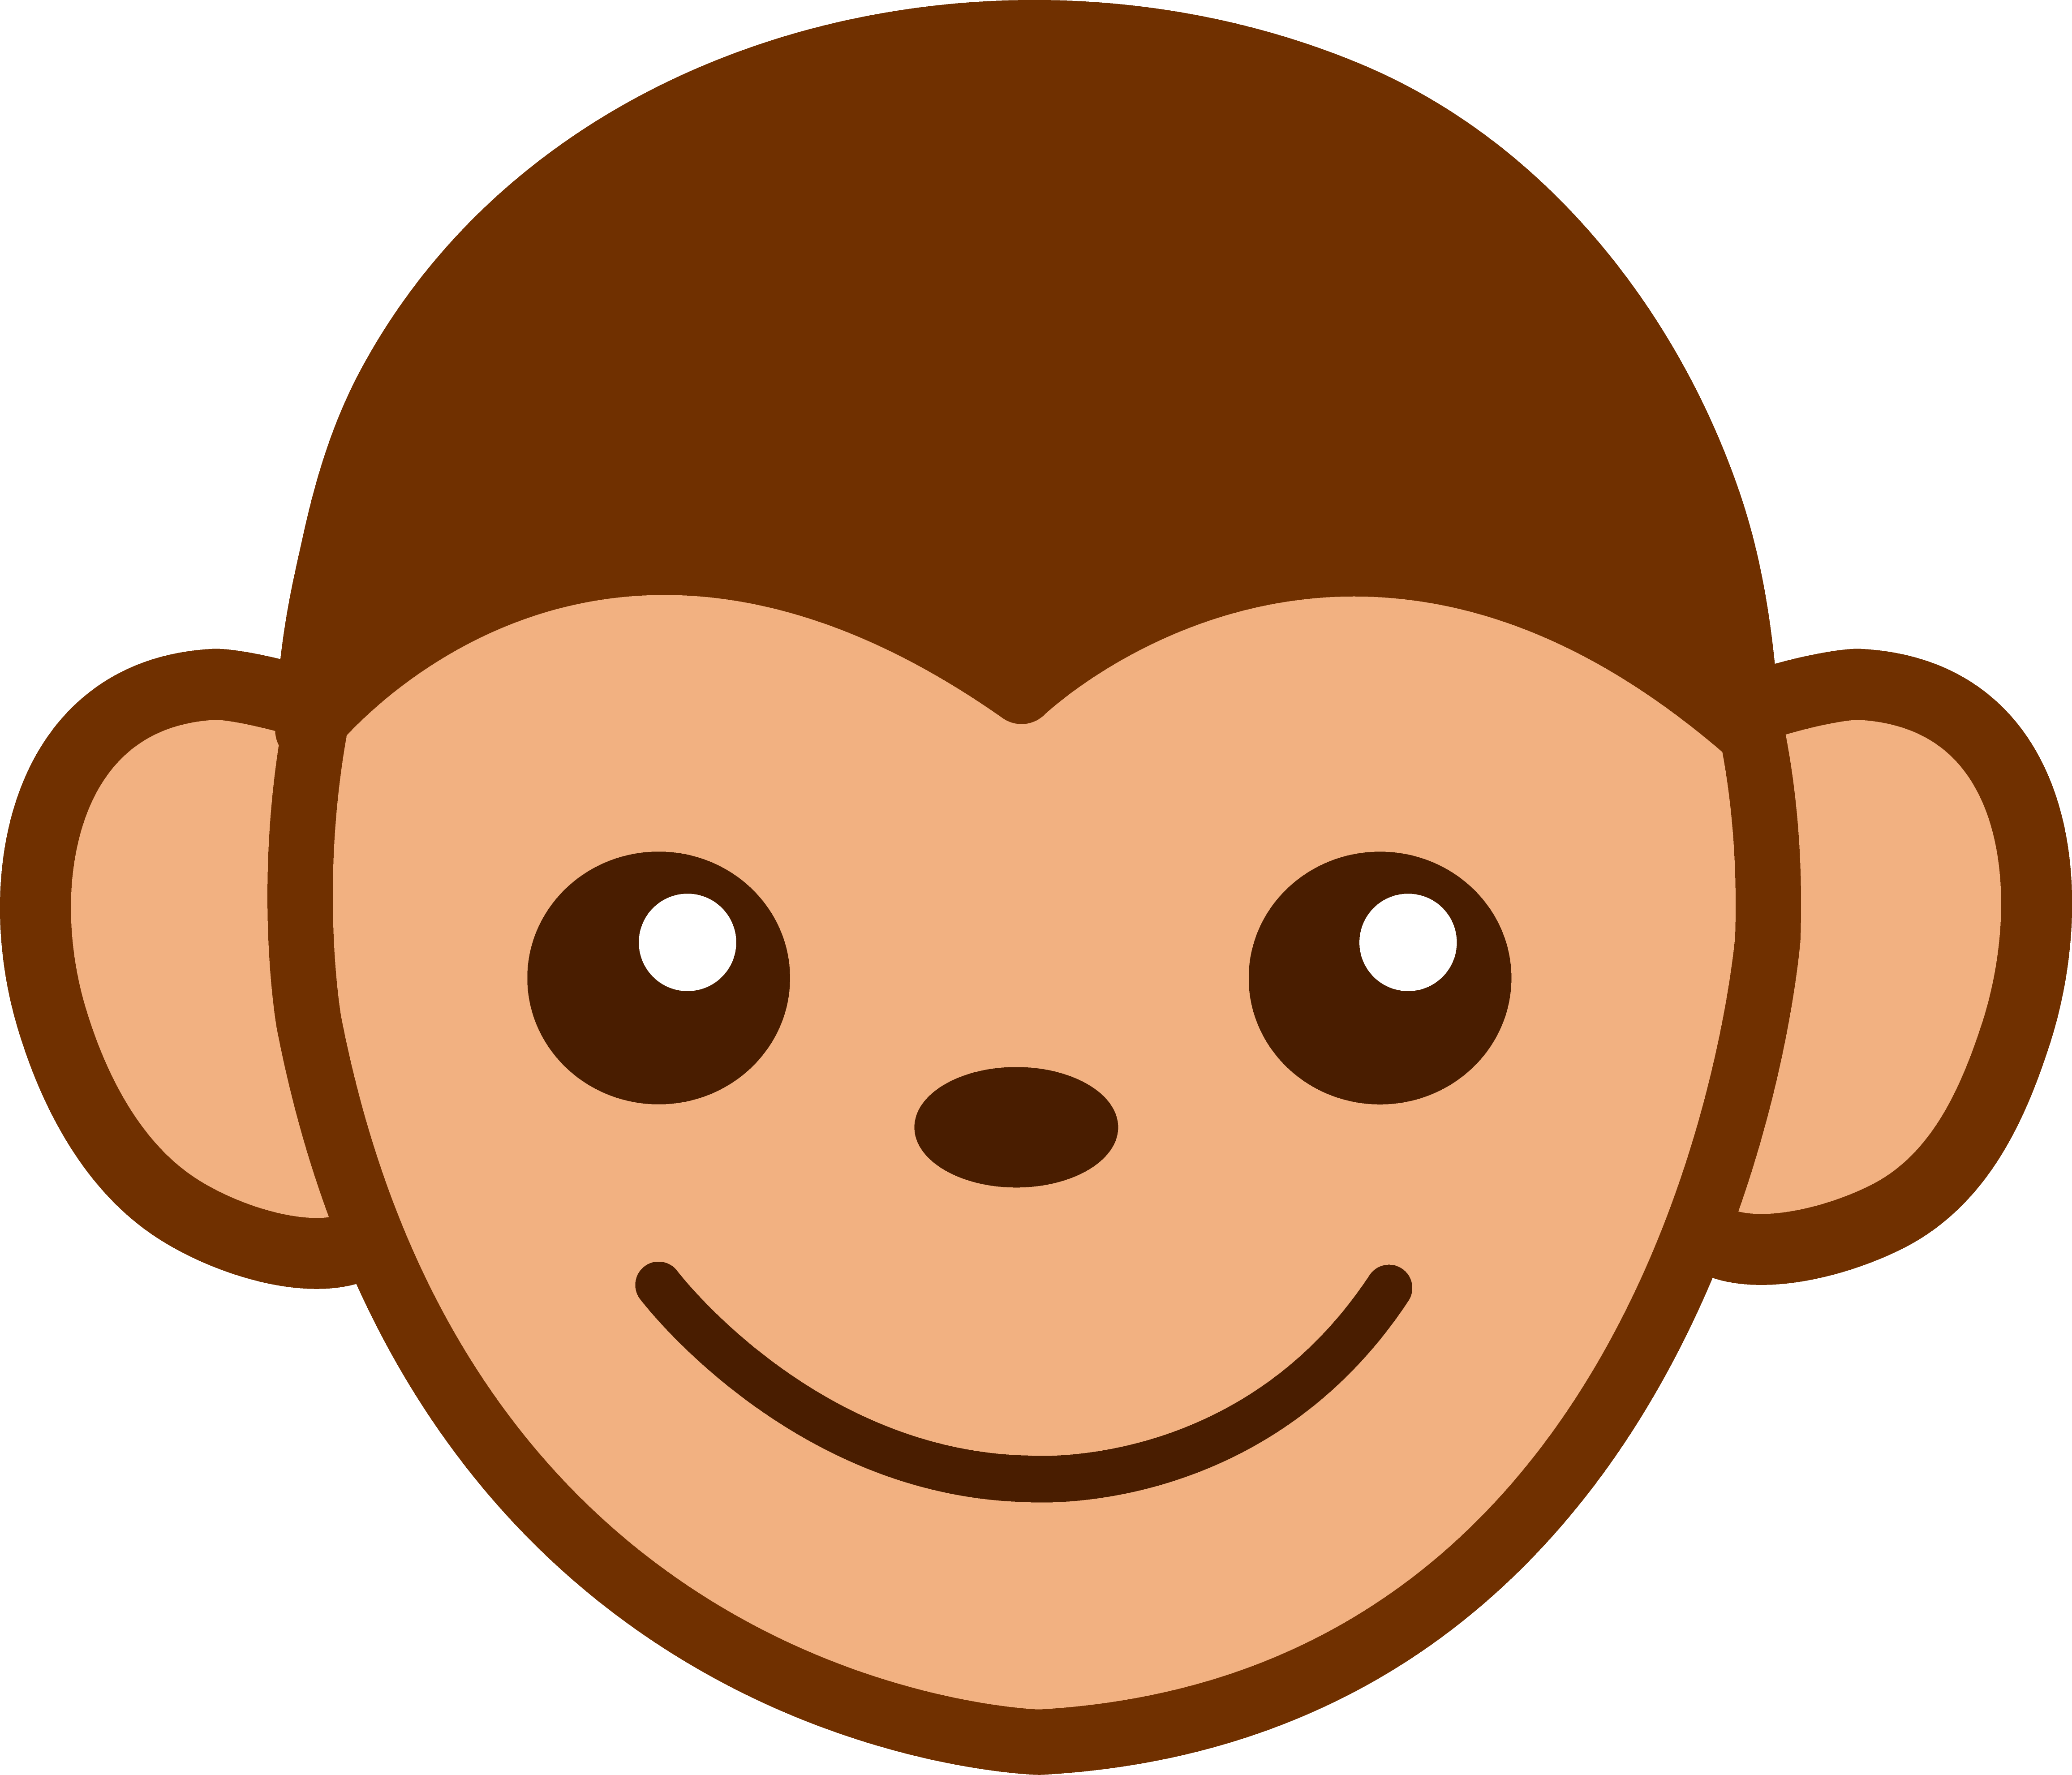 Cute brown Monkey Face Clip Art free image.